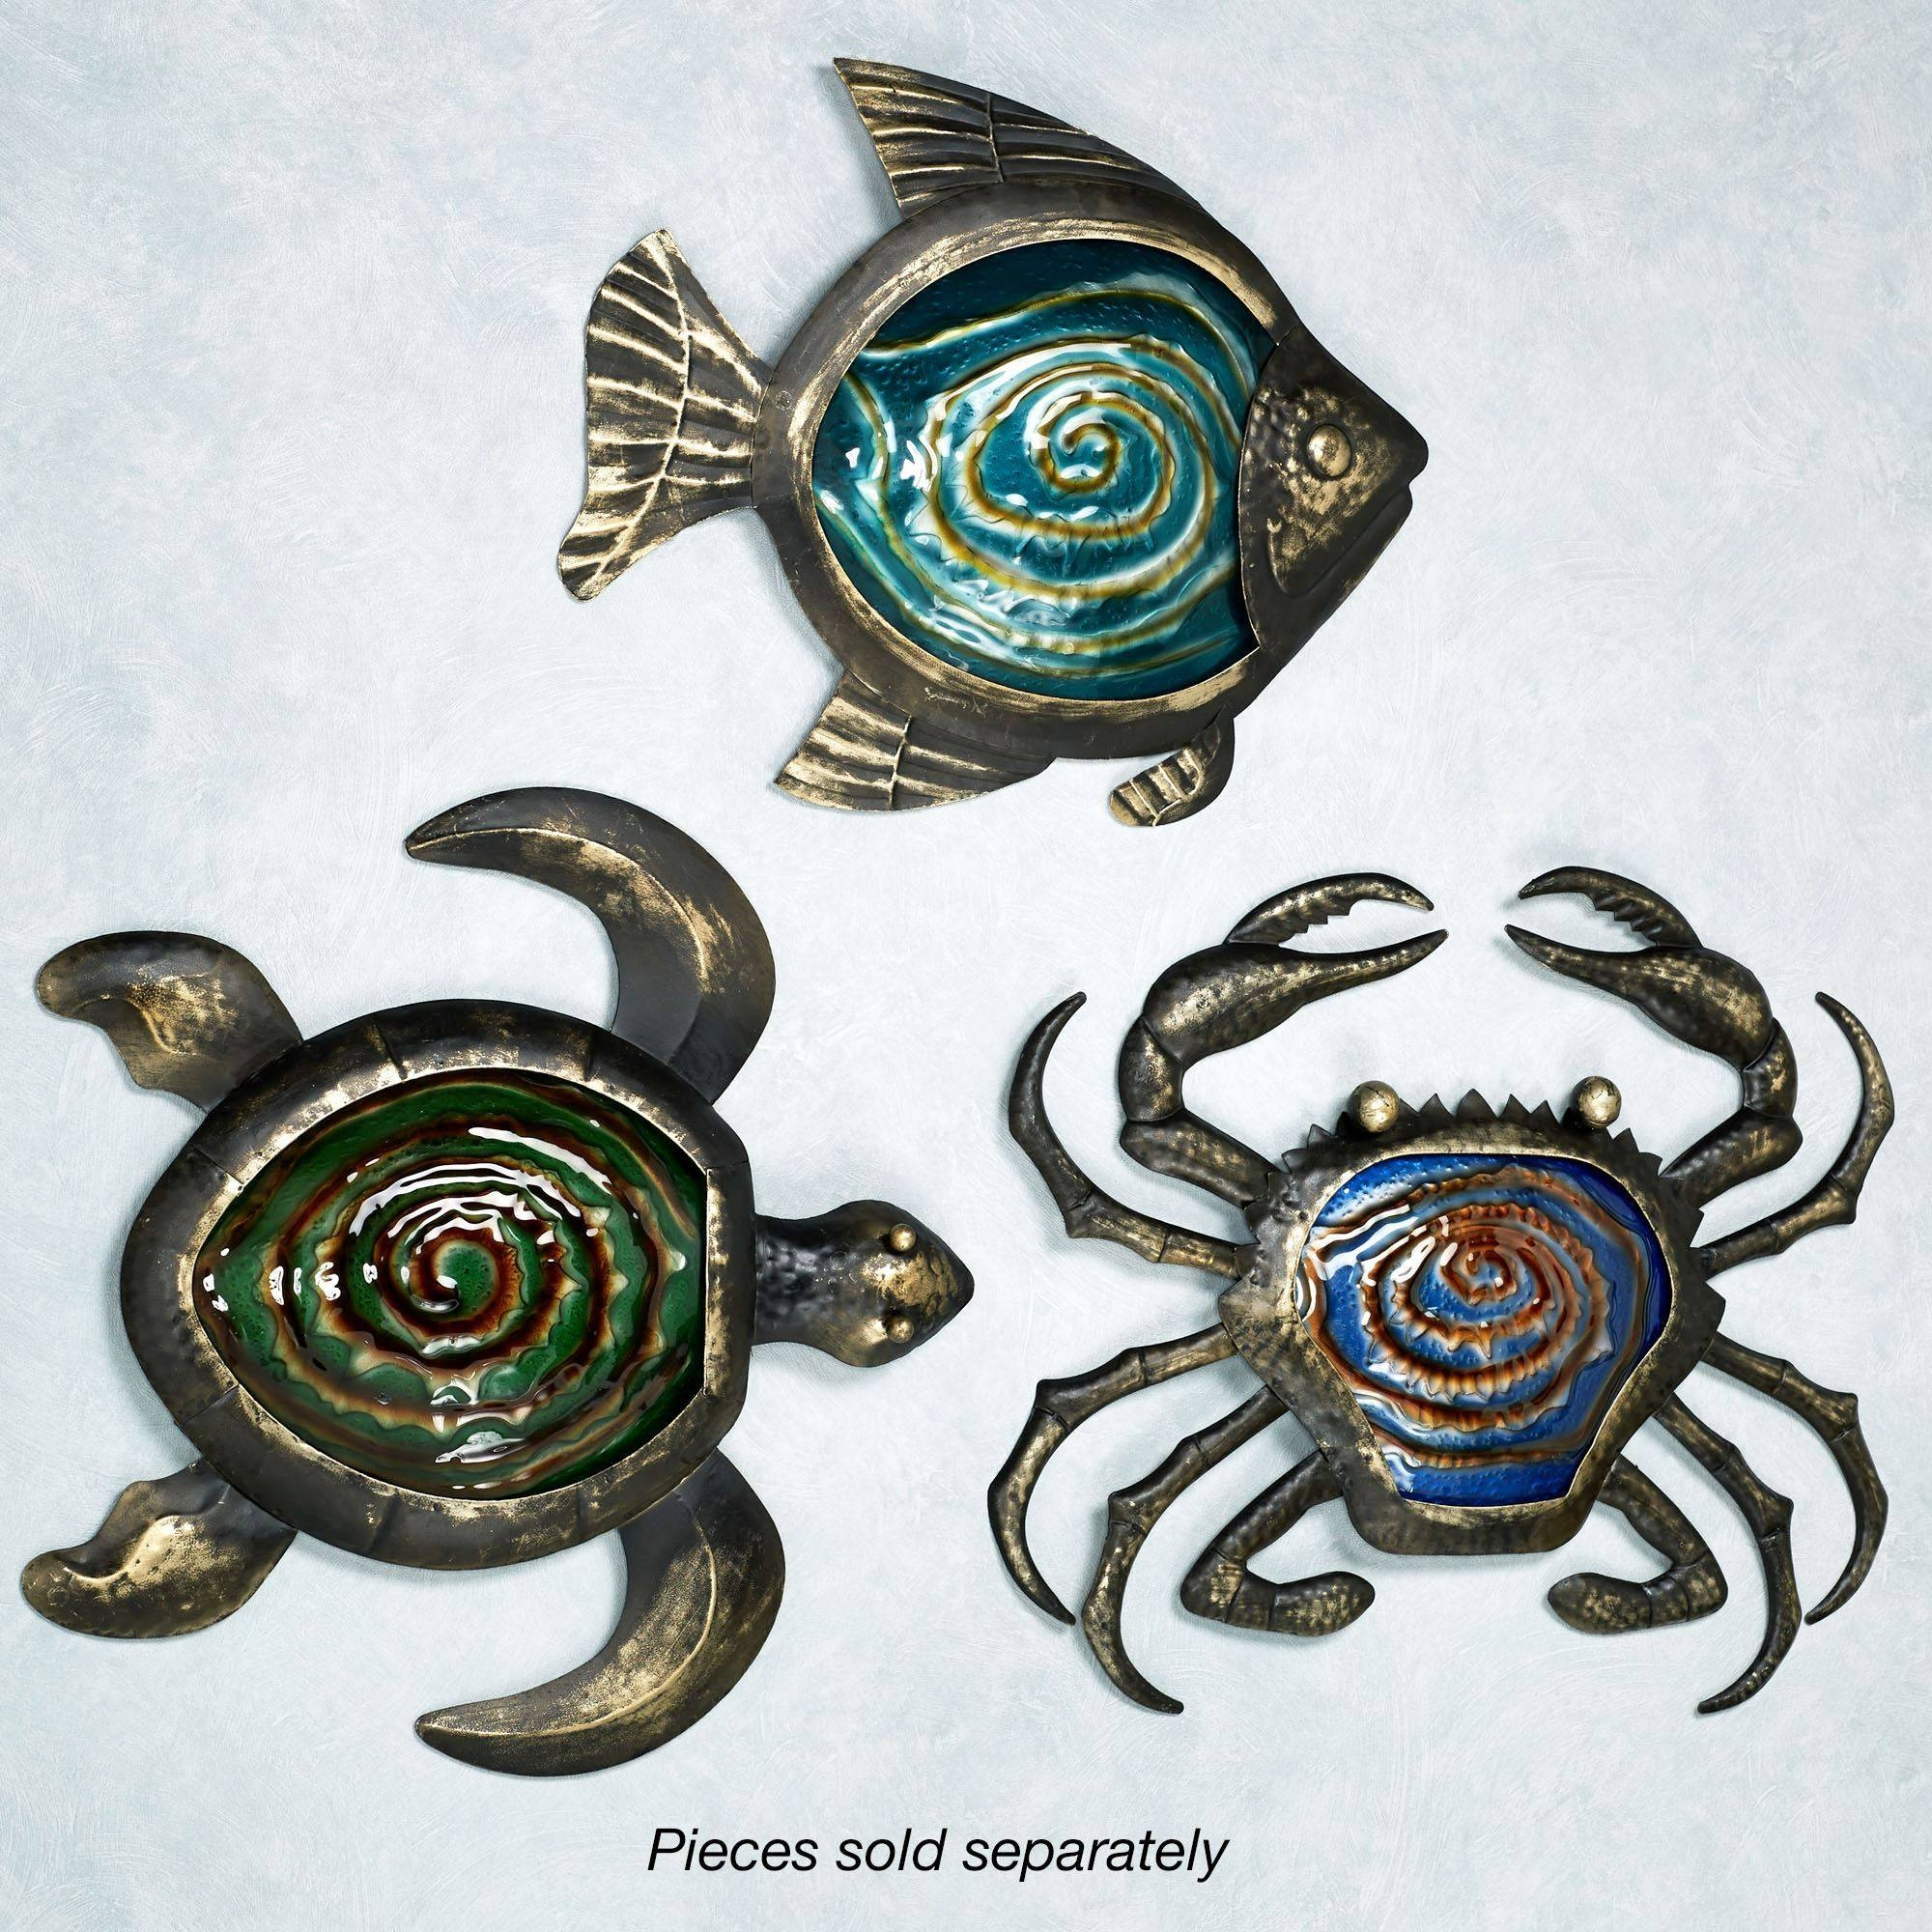 Sealife Indoor Outdoor Glass Metal Wall Art Throughout Most Recent Glass And Metal Wall Art (View 13 of 20)